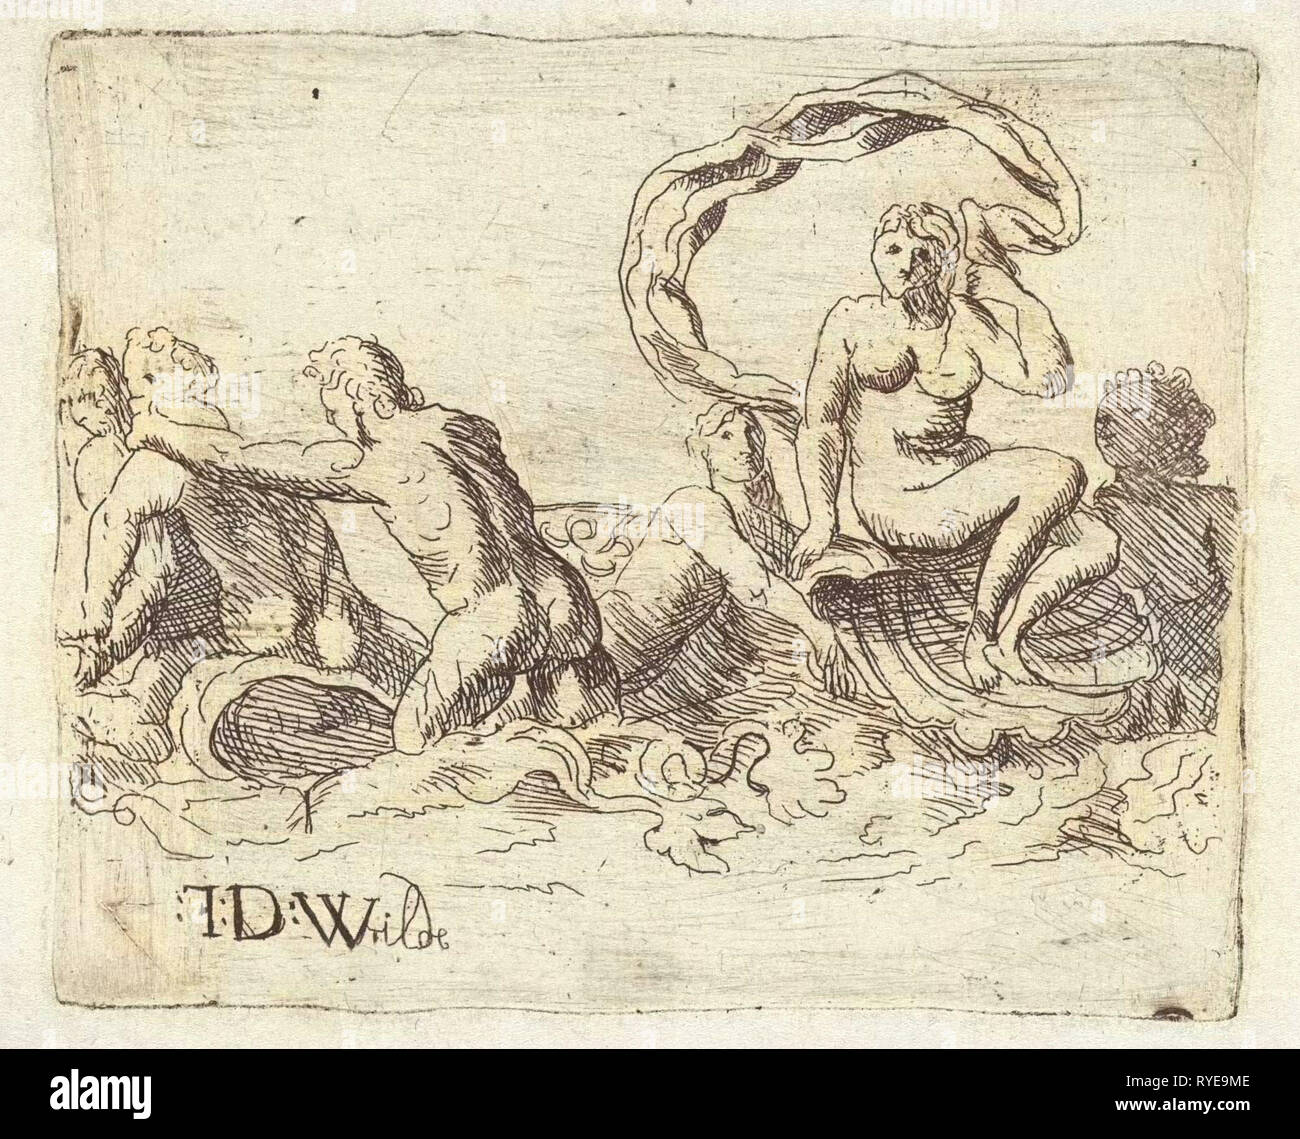 sea gods and nymphs in the surf, Franz de Wilde - Stock Image